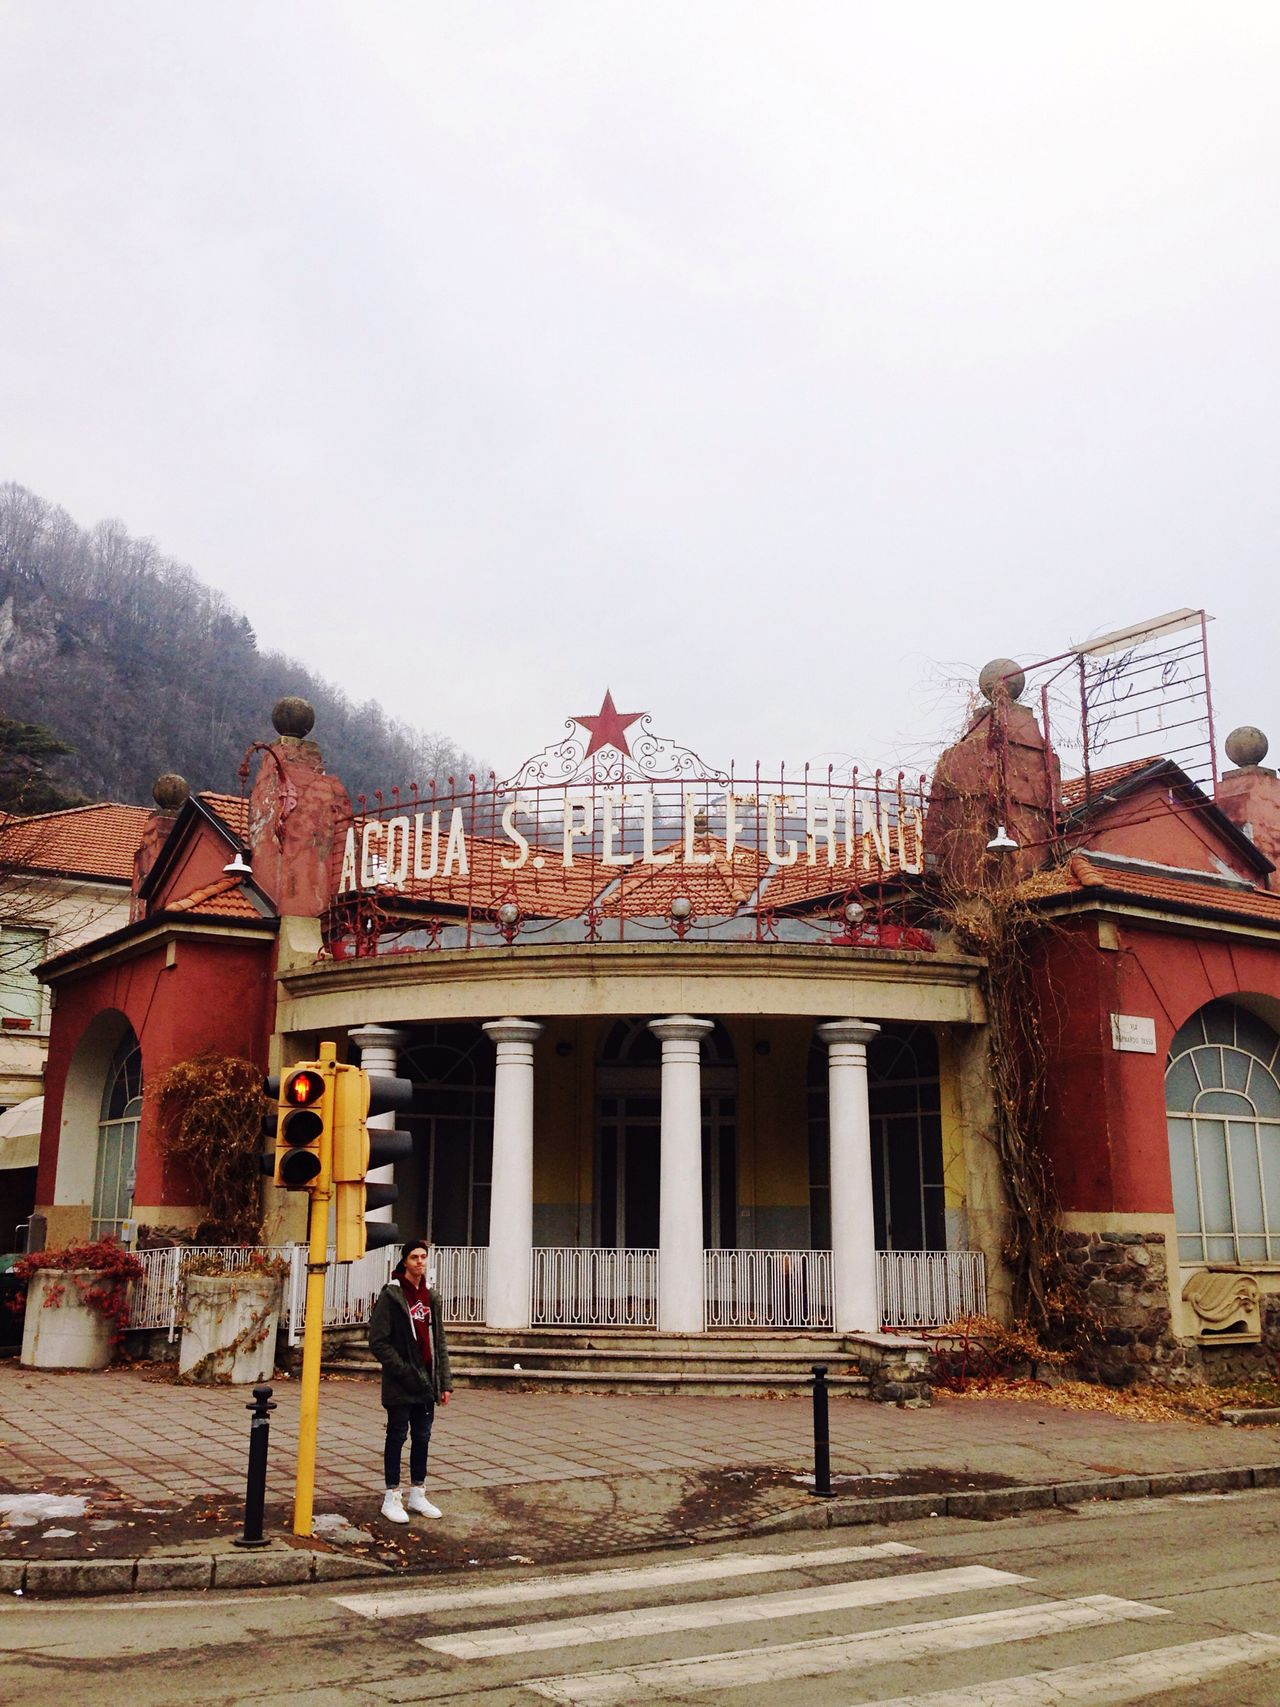 Architecture Building Exterior Built Structure Real People Lifestyles Tourist Day Women Travel Destinations Outdoors Steps Sky One Person People Therme Art Nouveau Art Nouveau Architecture Ghost Town Abandoned Building San Pellegrino